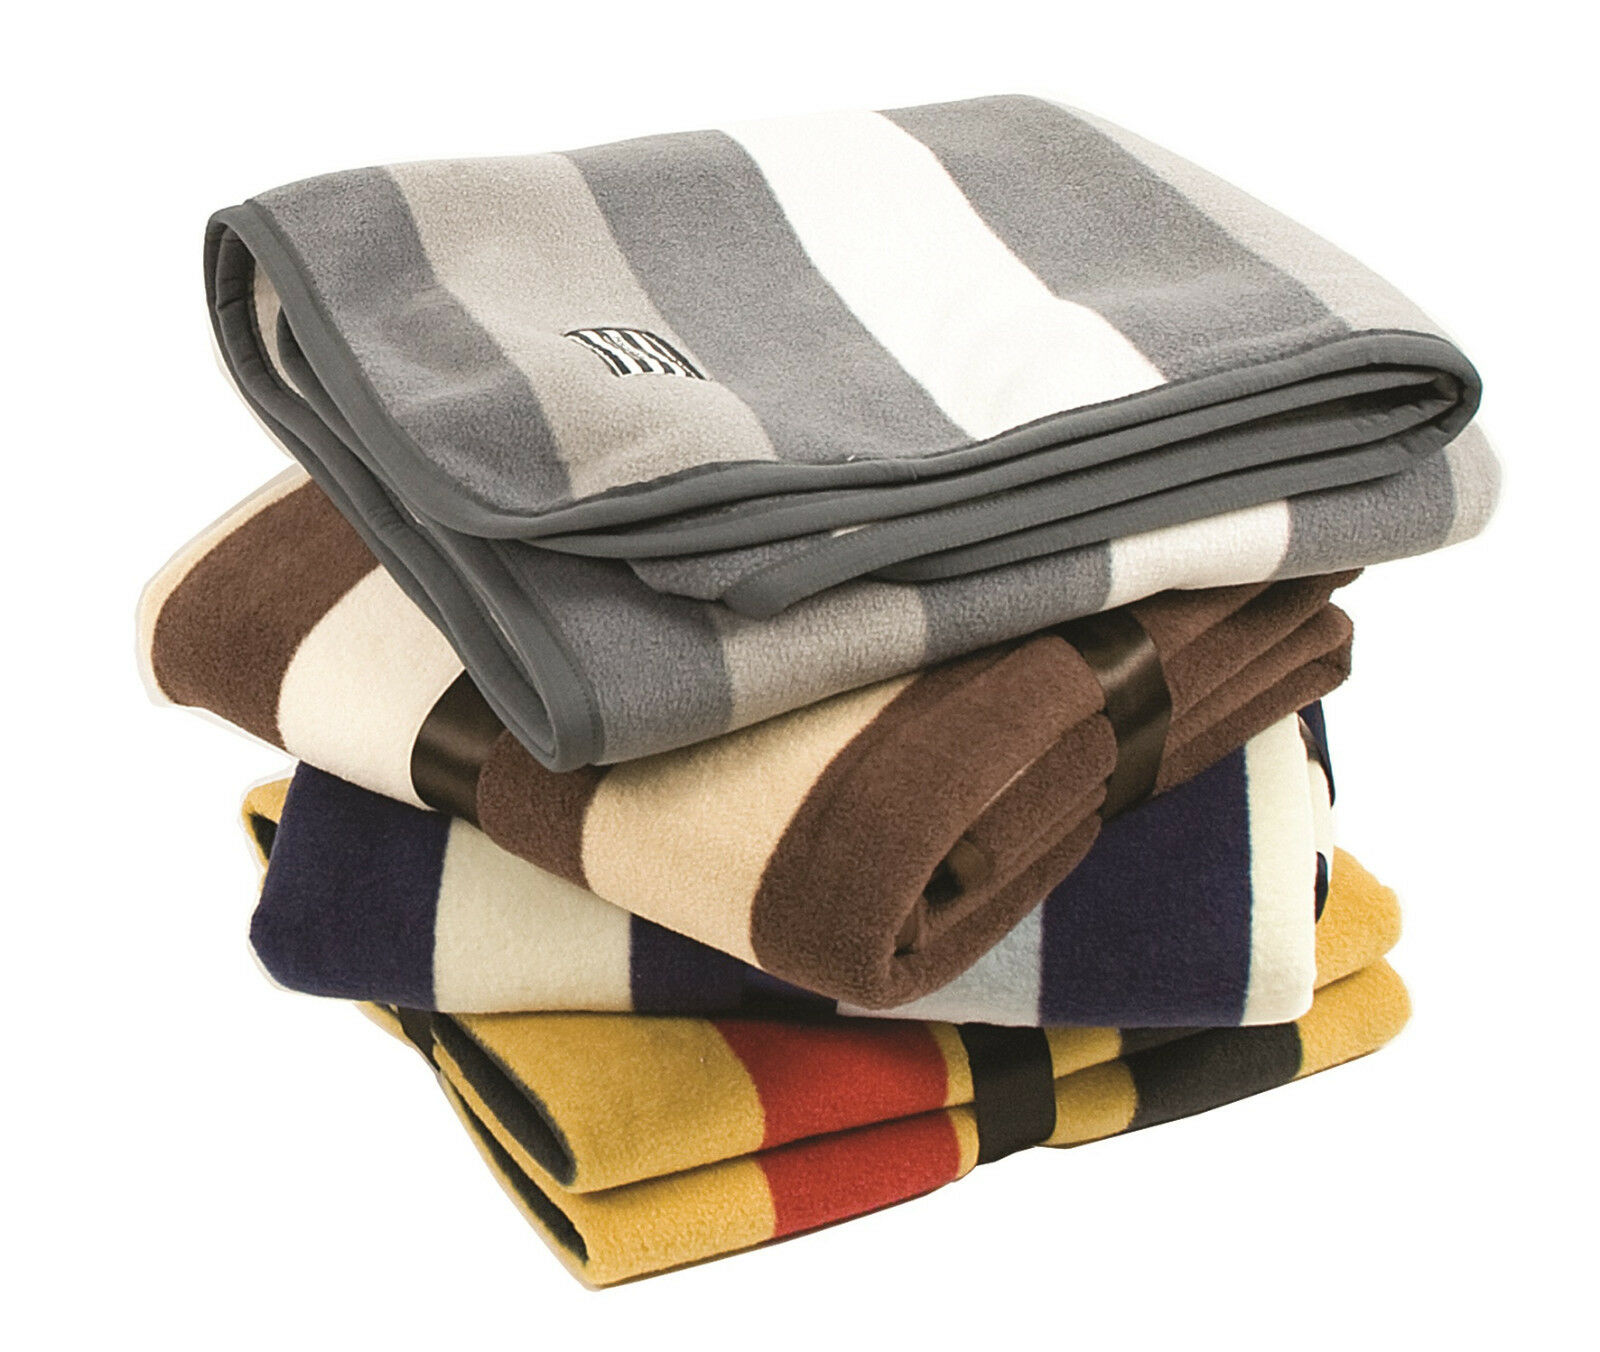 Horseware Fleece Throw 3 PK Ideal Para Muestra viajes pernoctaciones espectadores